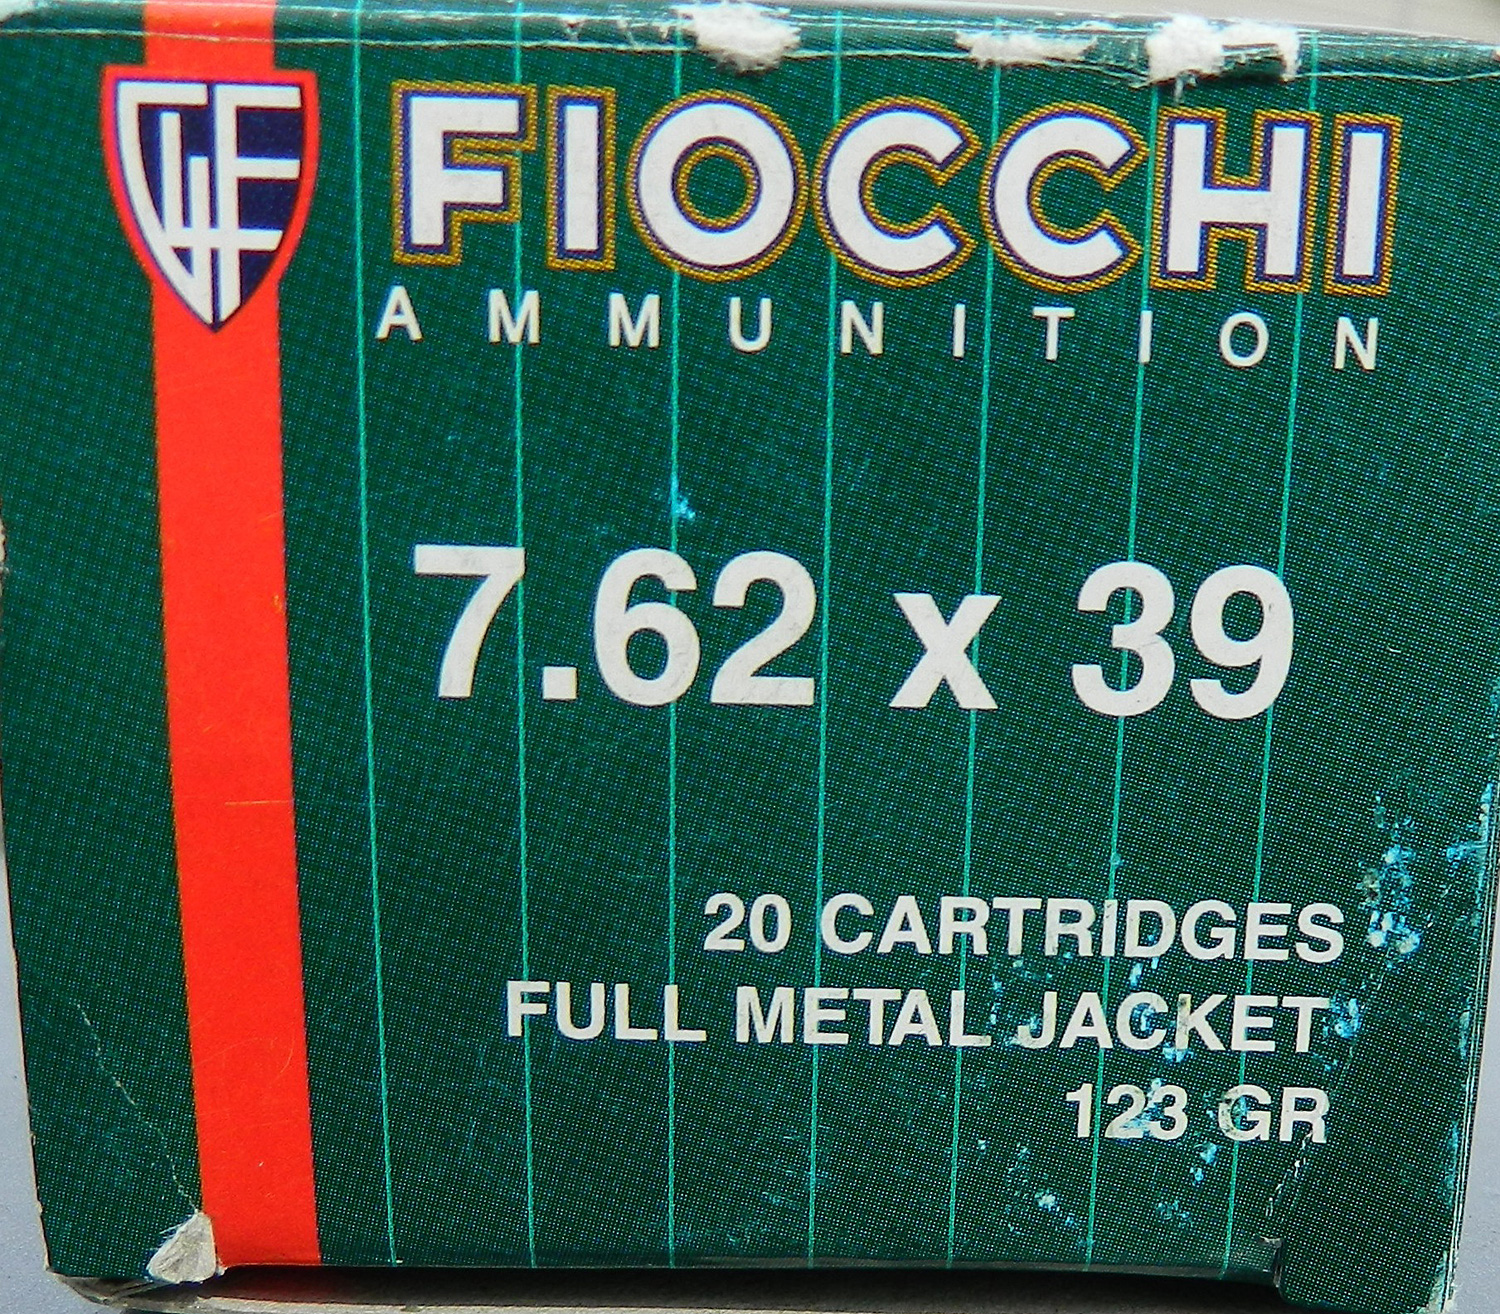 Box of Fiocchi 7.62x39 ammunition